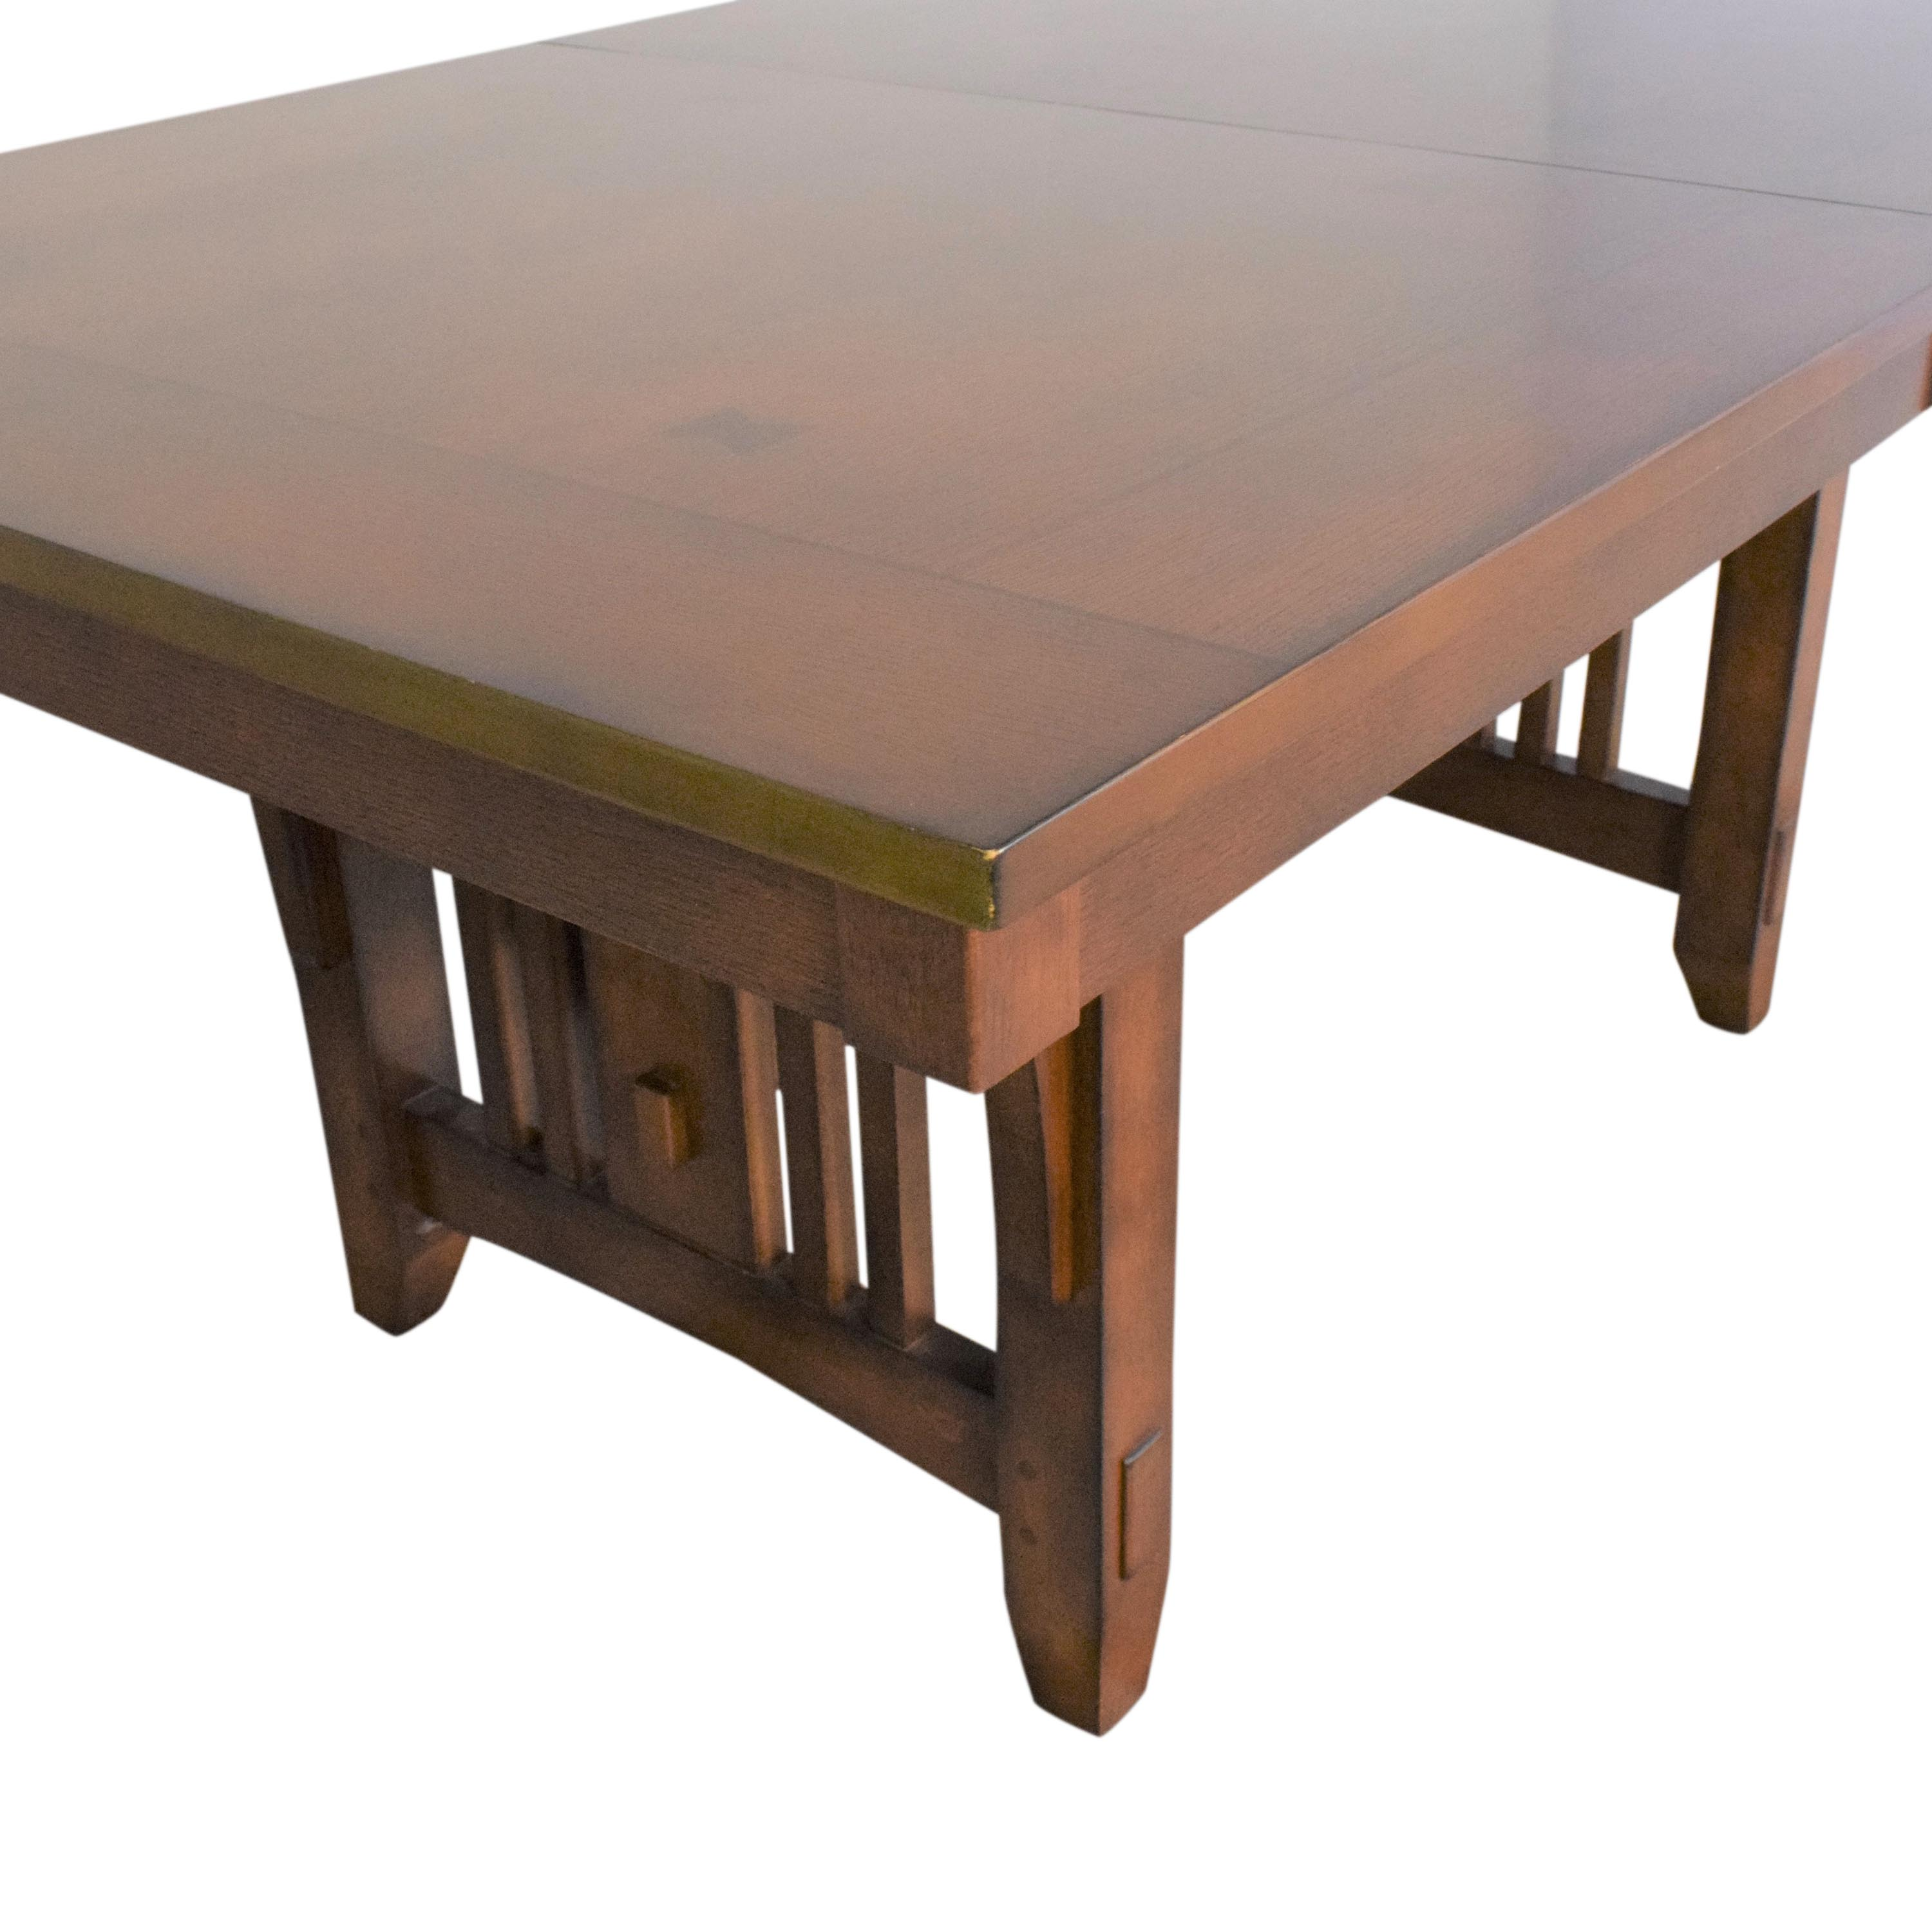 Green River Furniture Green River Mission Style Extendable Dining Table ma